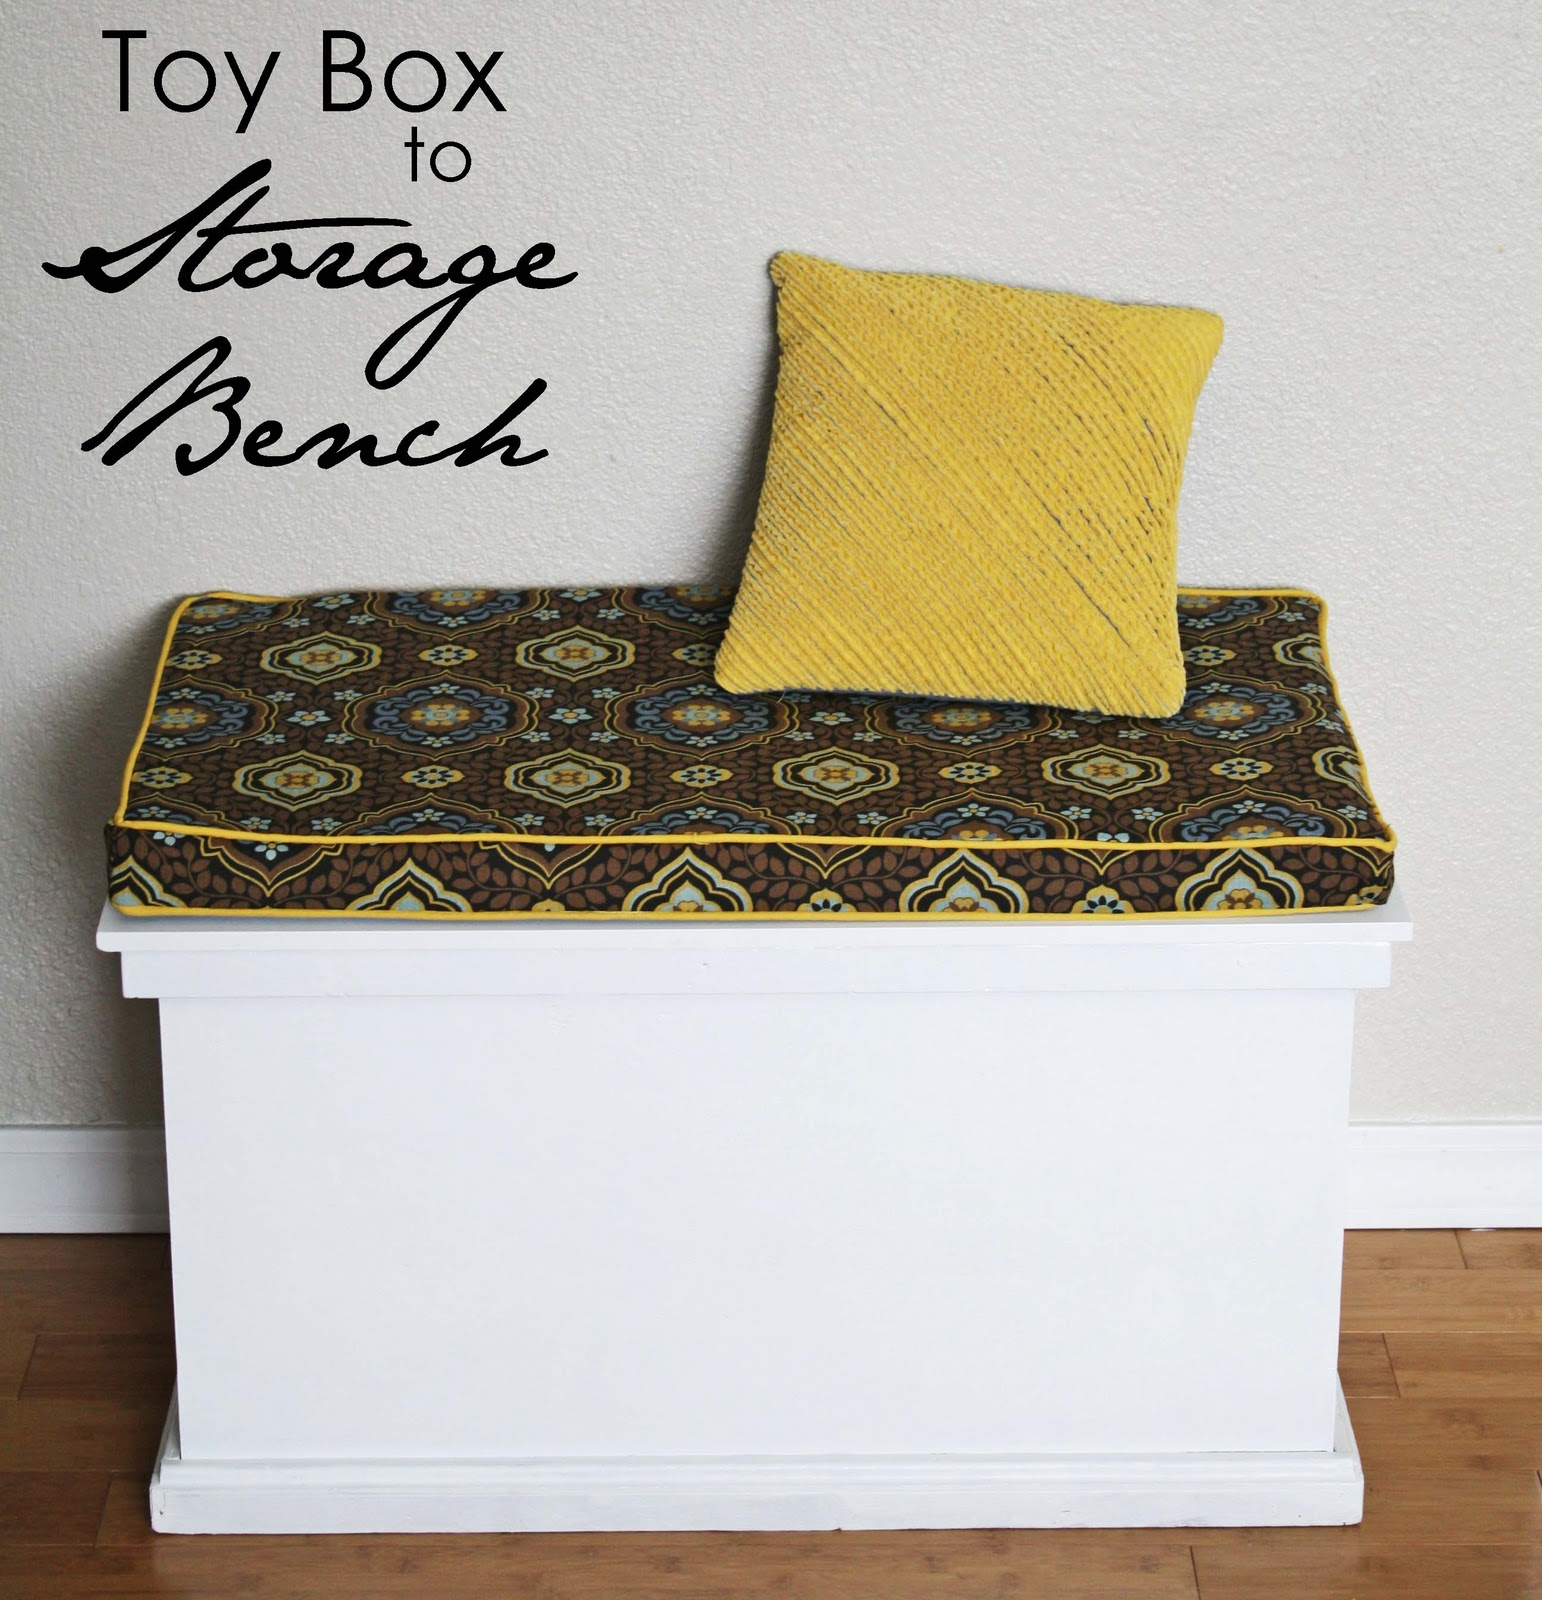 Running With Scissors Toy Box Into A Bench